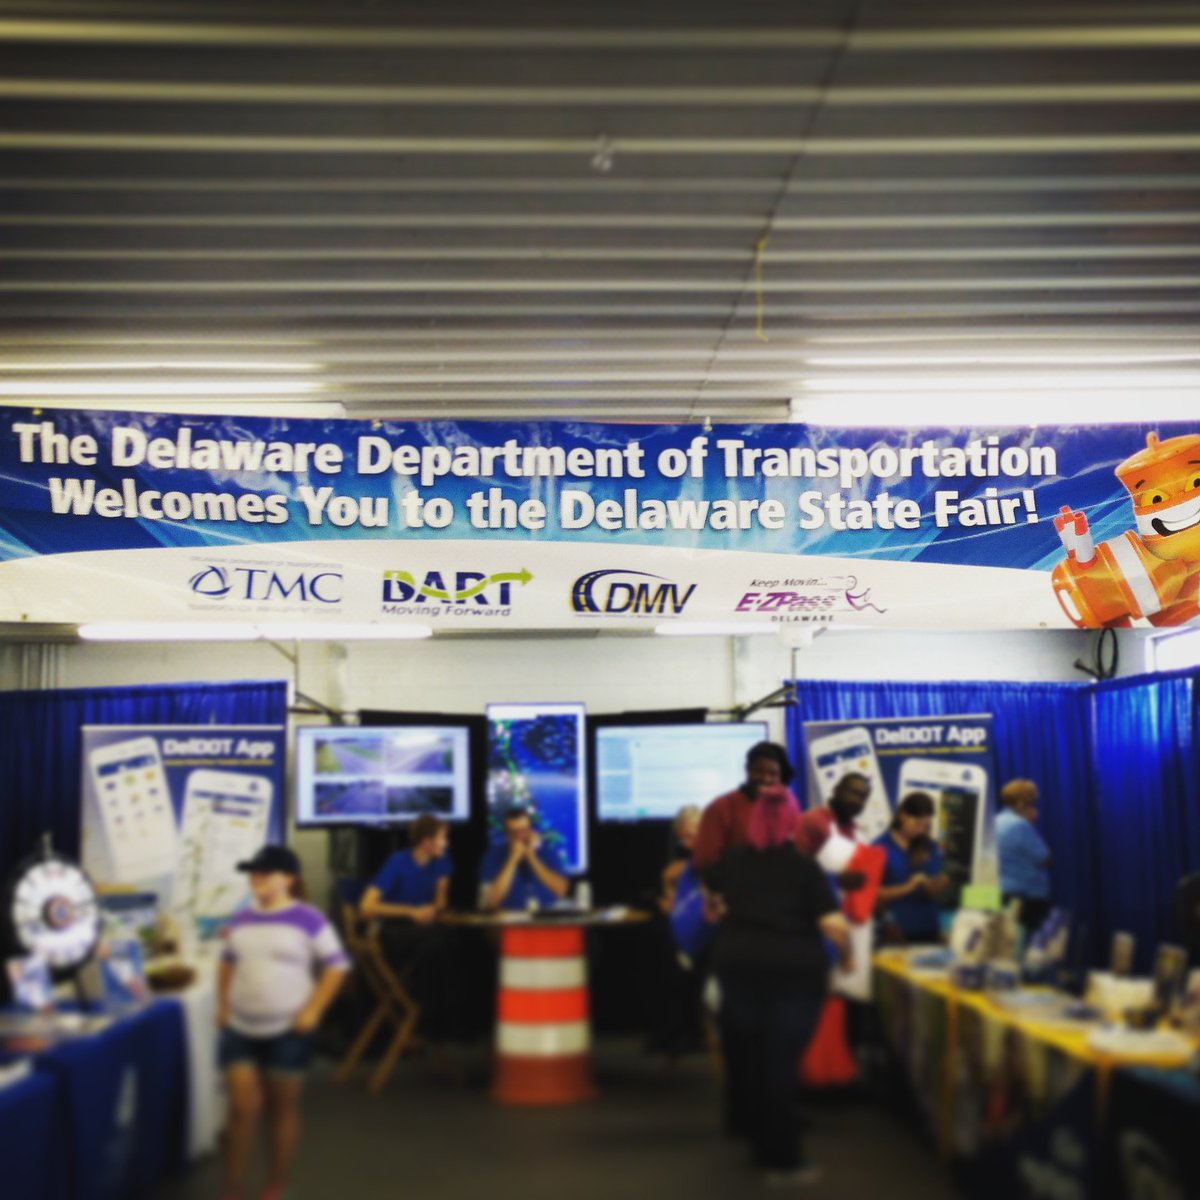 We're in the Delaware Building with information, goodies, and a spin to win wheel at the Delaware DOT Table. Stop in, check us out! #DEStateFair #NetDE